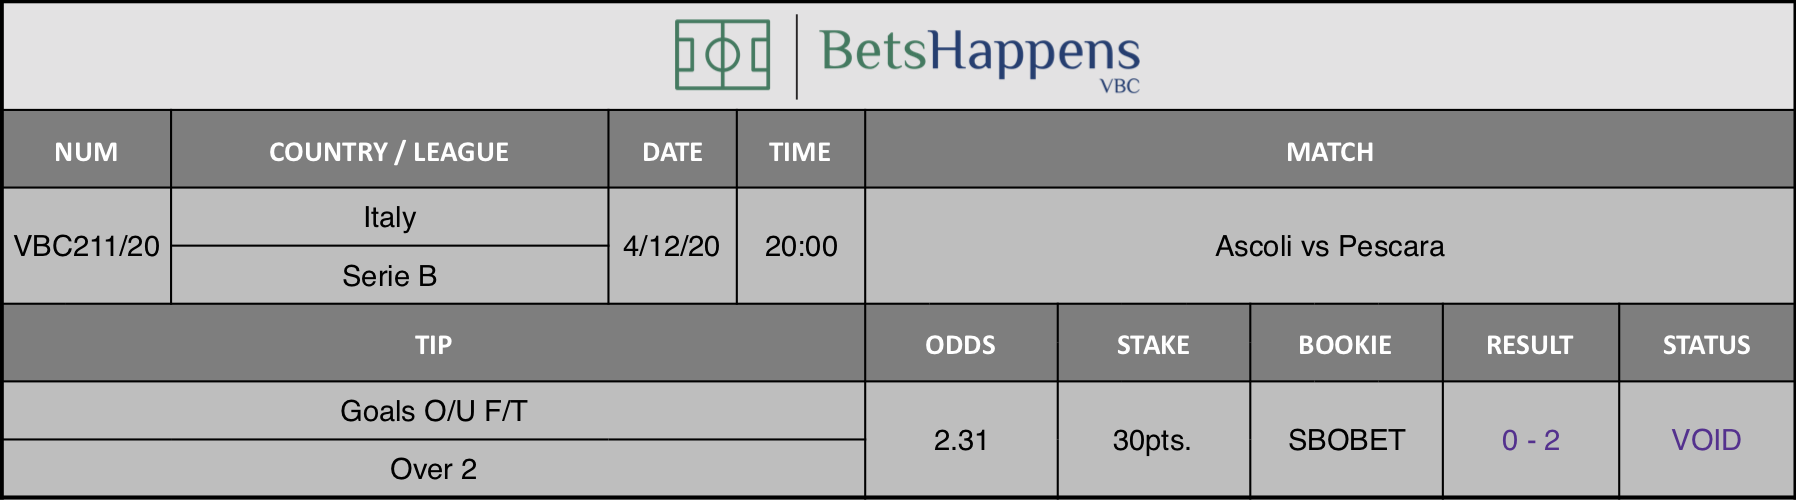 Results of our tip for the Ascoli vs Pescara match where Goals O/U F/T Over 2 is recommended.